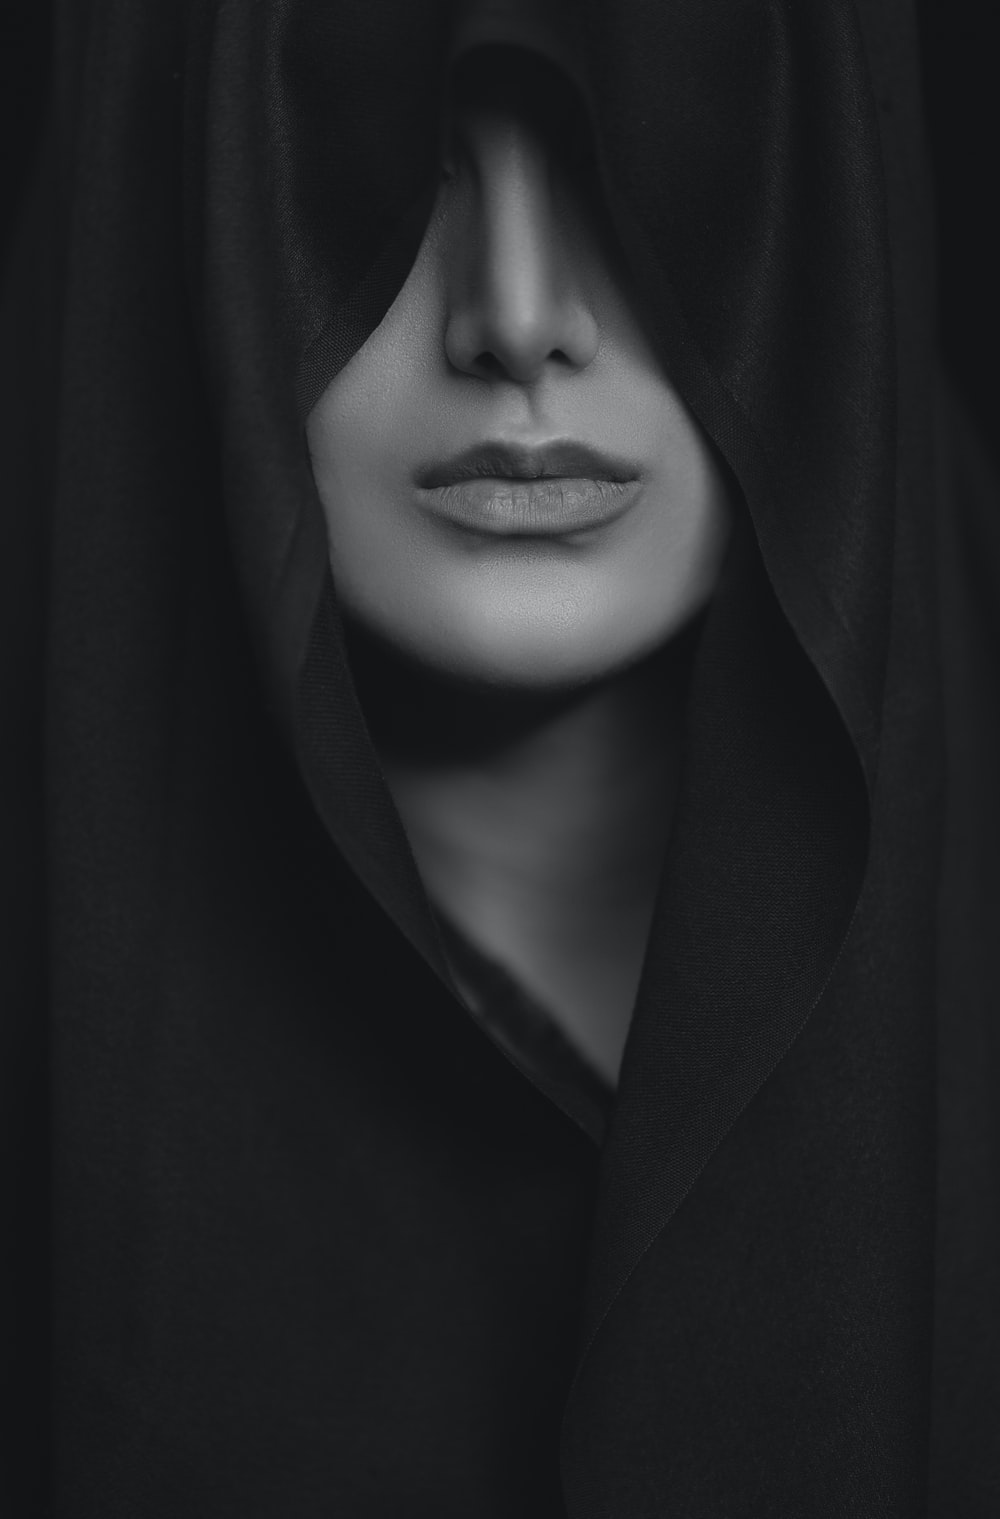 woman in black coat in grayscale photography